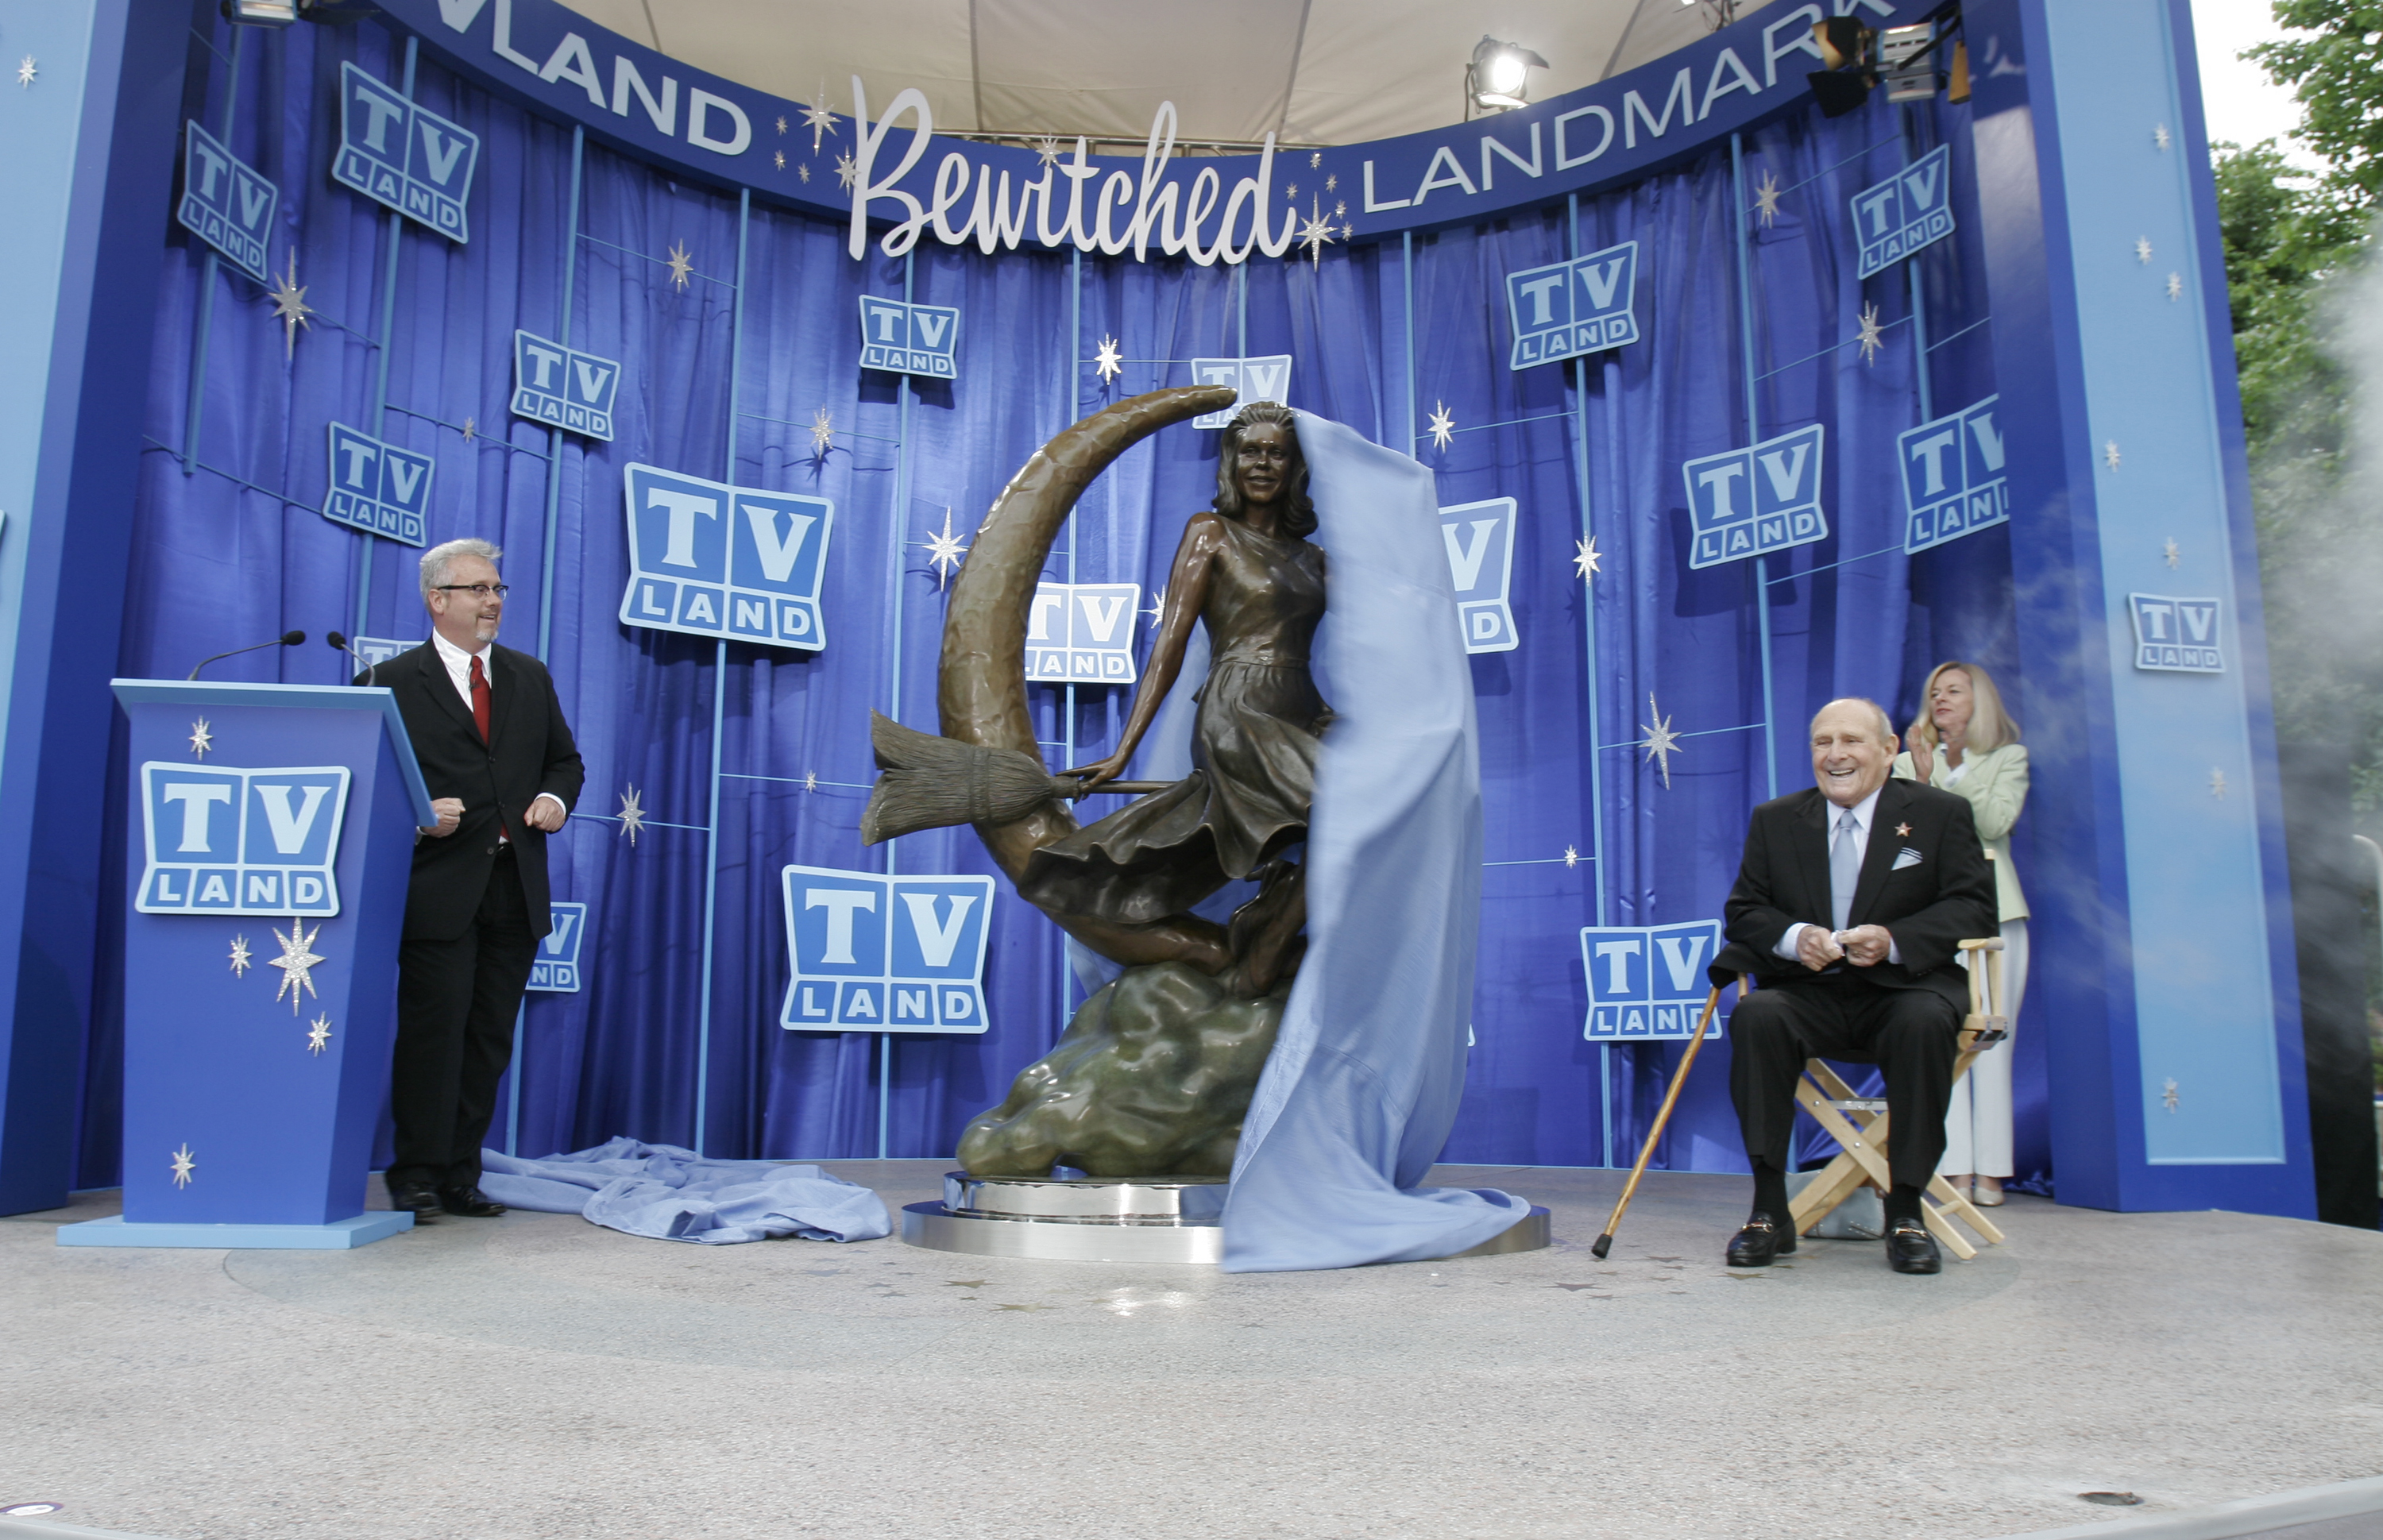 Unveiling, June 15, 2005